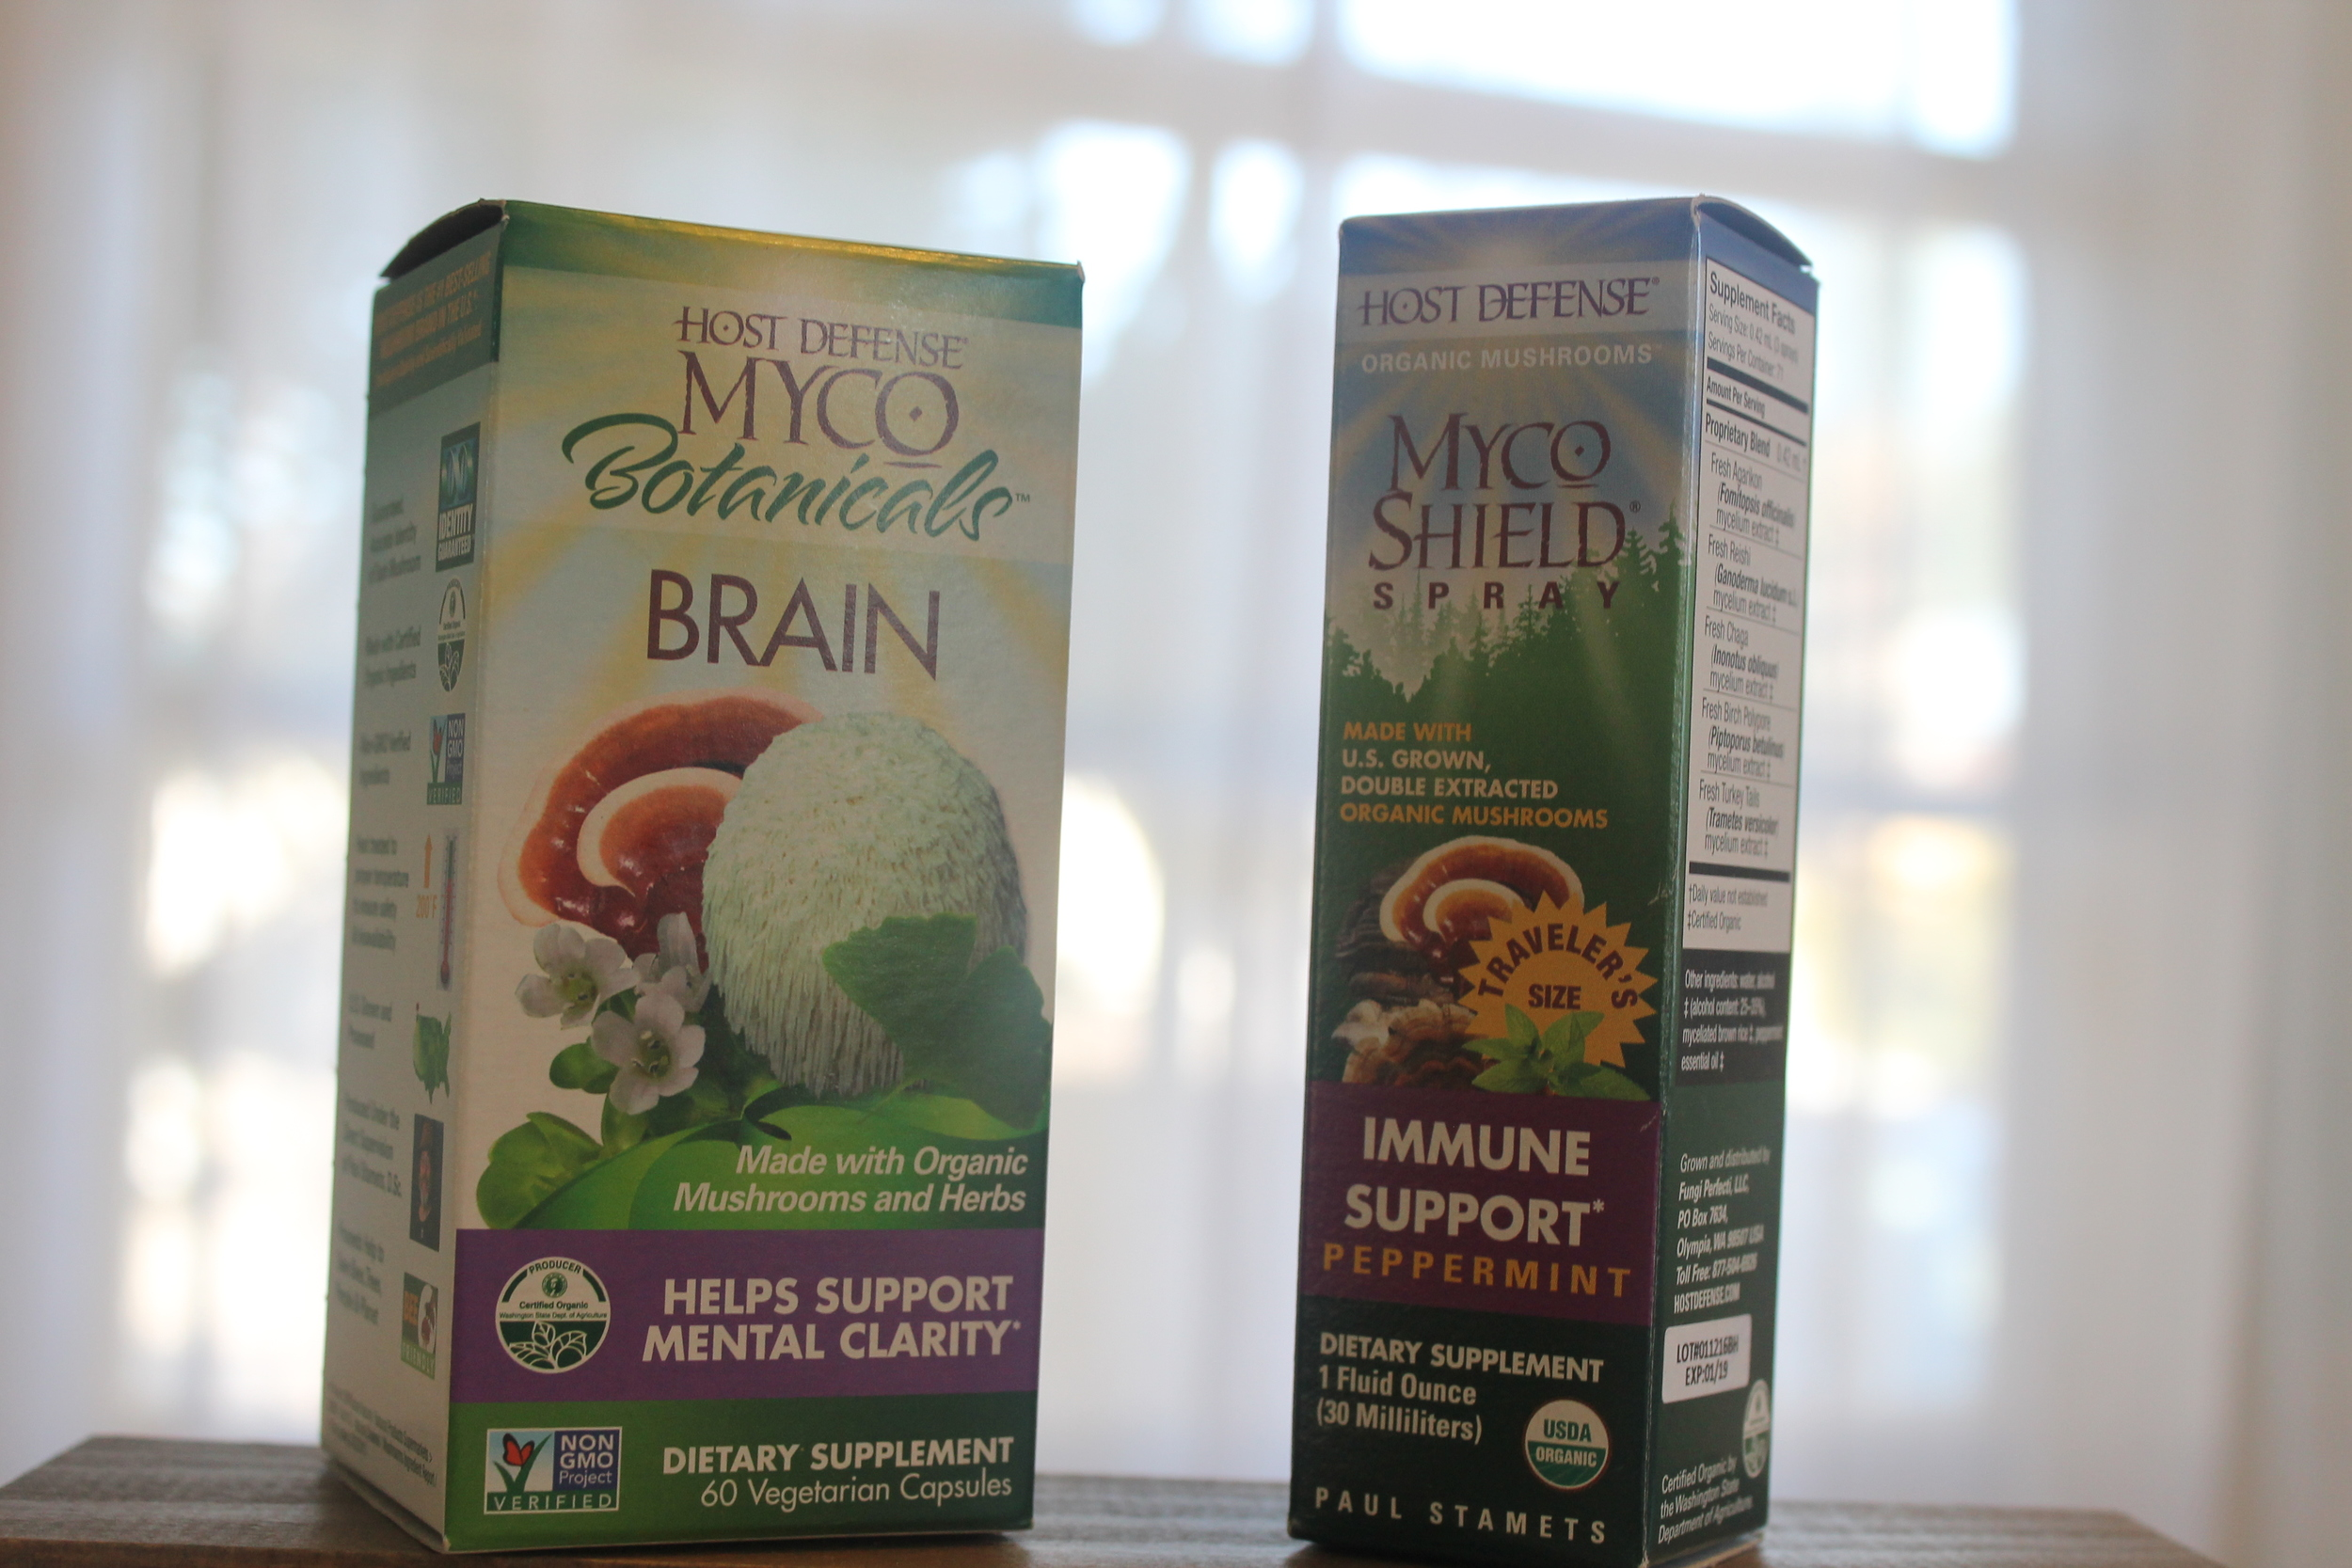 4.  Host Defense     A medicinal mushroom supplement company that I have used and loved in the past. This year they had a new supplement--the MycoBotanicals™ Brain blend. Made up of lion's mane, reishi, cordycpes, ginkgo balboa, bacopa, and gotu kola, this supplement does the trick at reducing metal fog and increasing concentration and clarity!